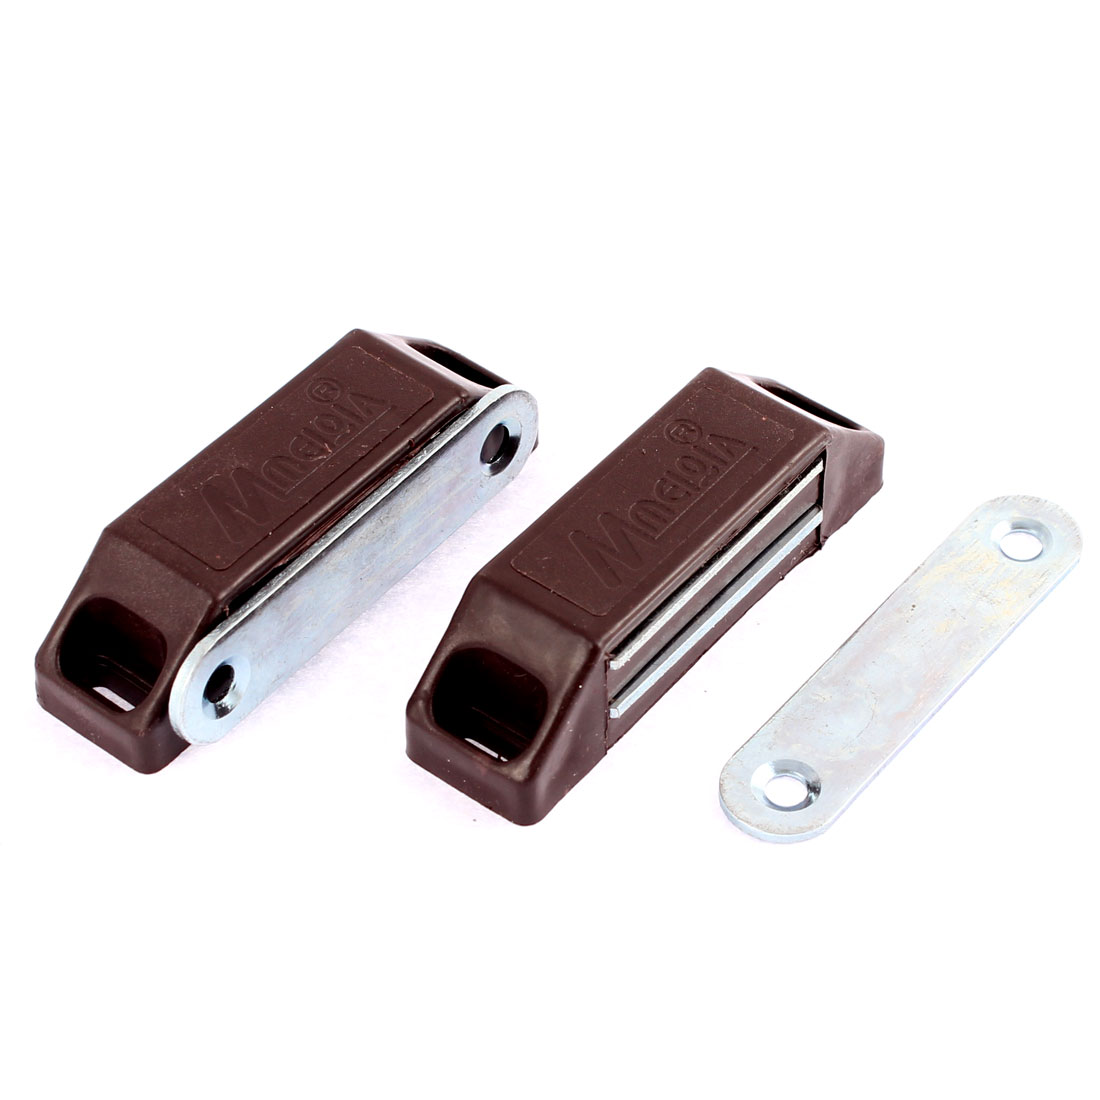 2 Pcs Cupboard Cabinet Furniture Magnetic Catch Door Latch 60mm x 18mm Dark Brown